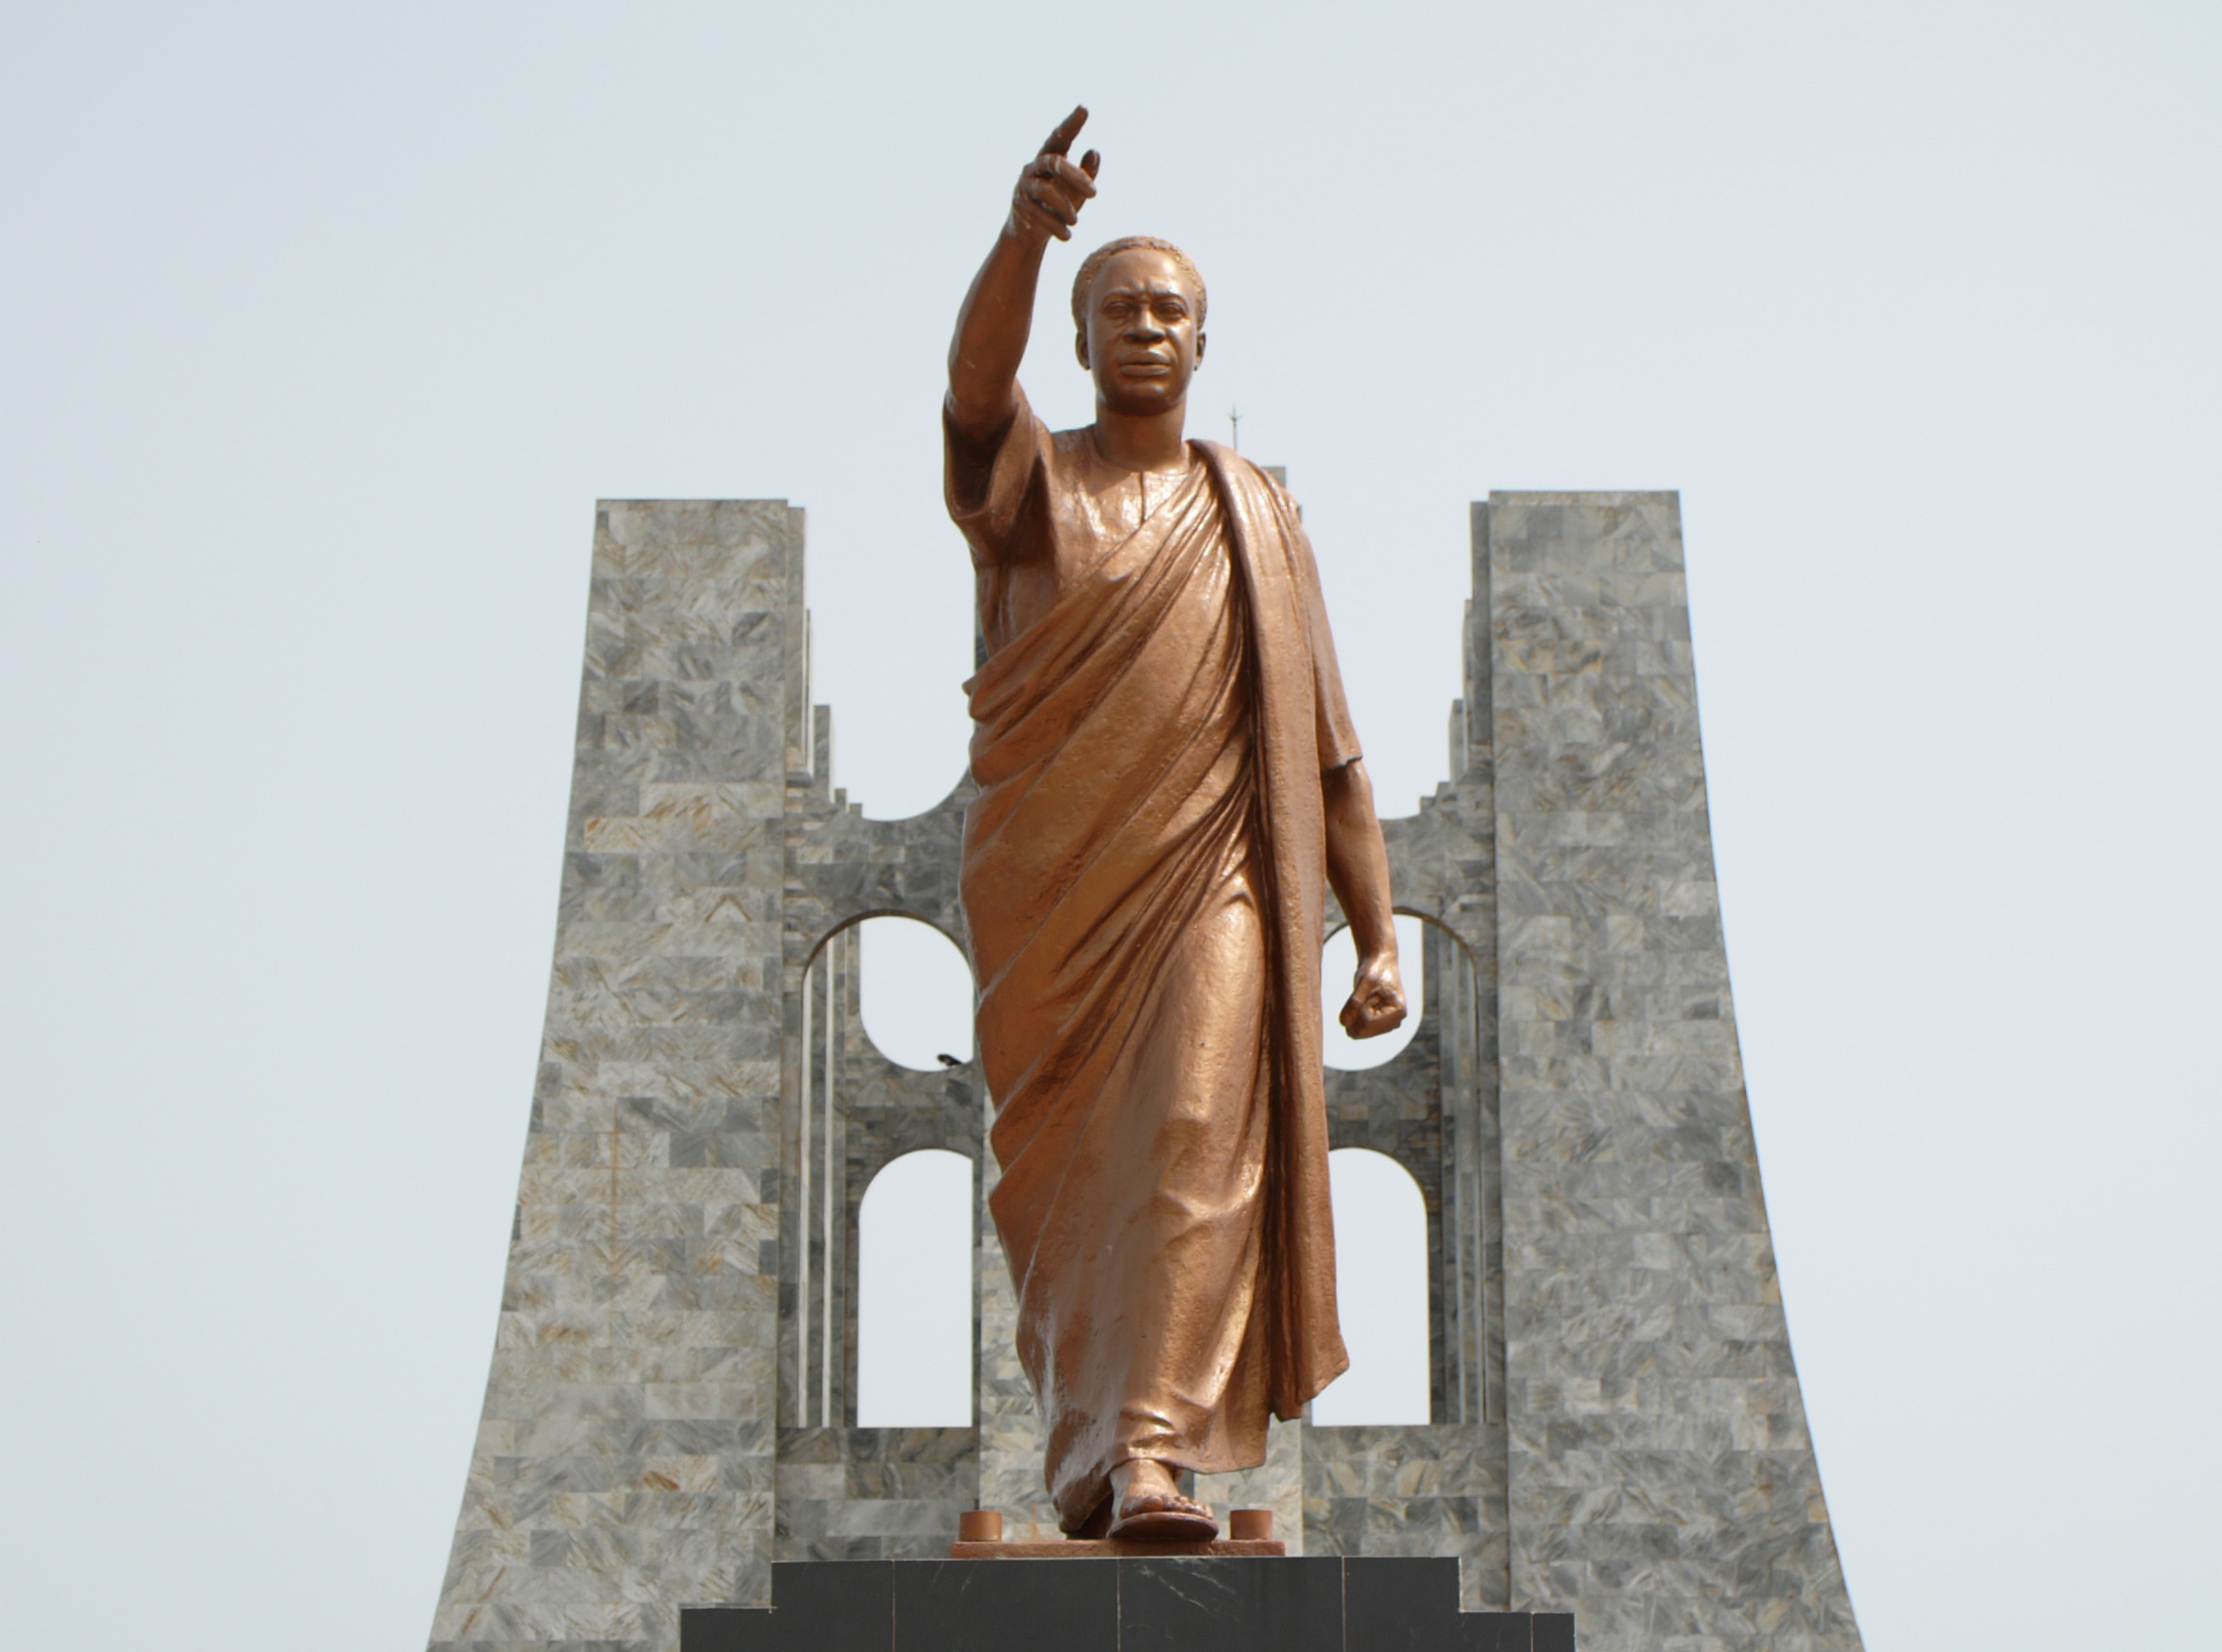 4pm • Learn about Nkrumah